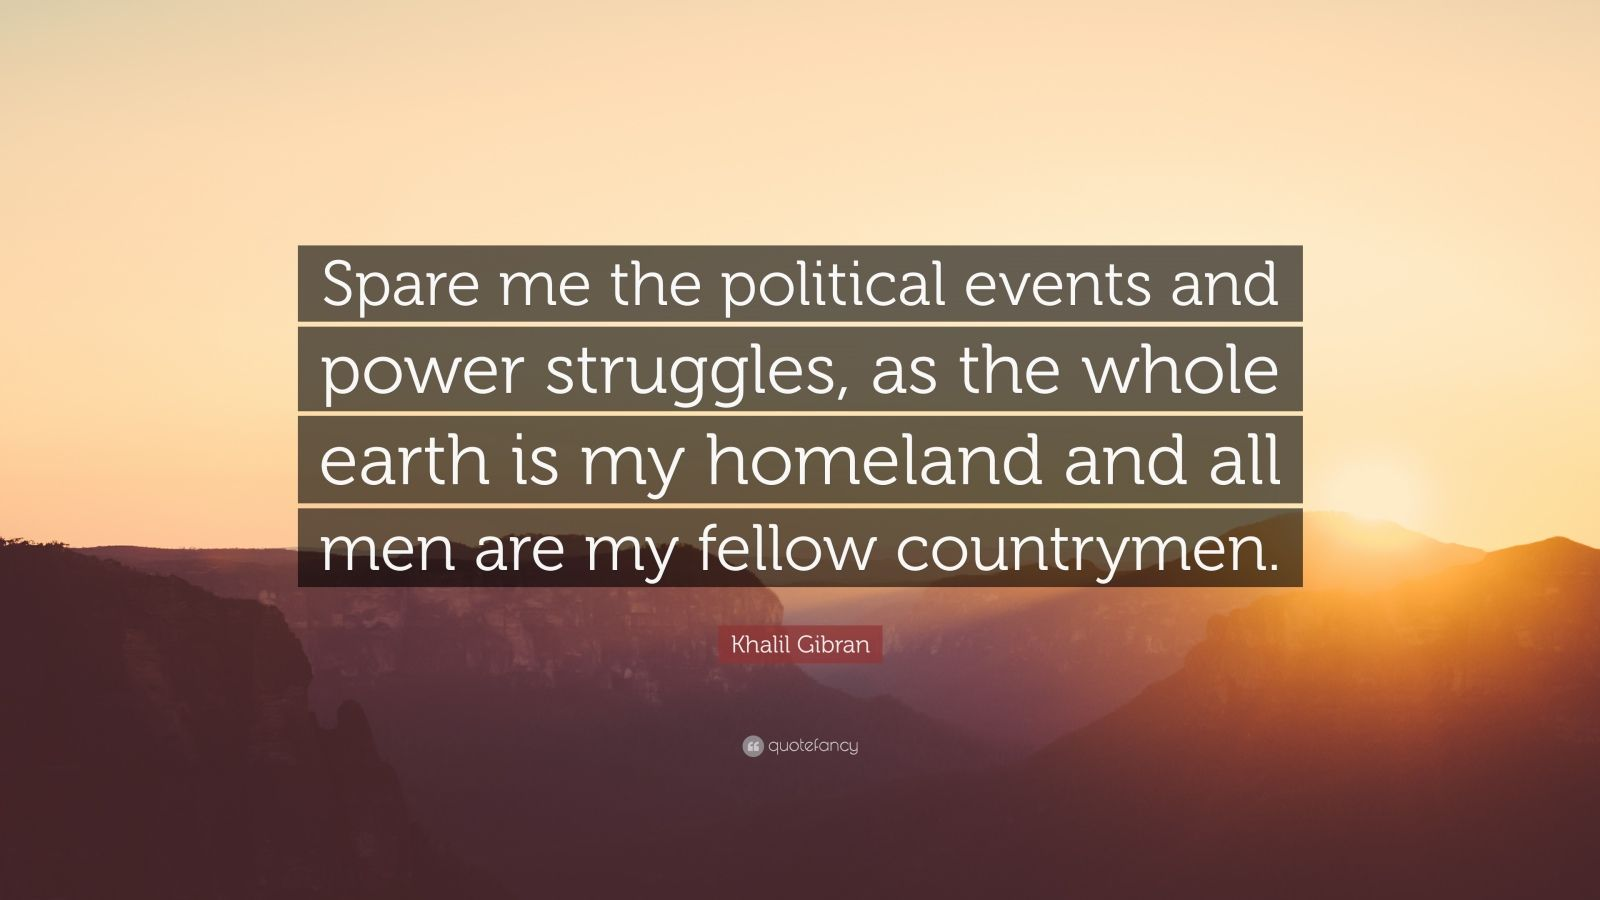 """Khalil Gibran Quote: """"Spare me the political events and power struggles, as the whole earth is my homeland and all men are my fellow countrymen."""""""